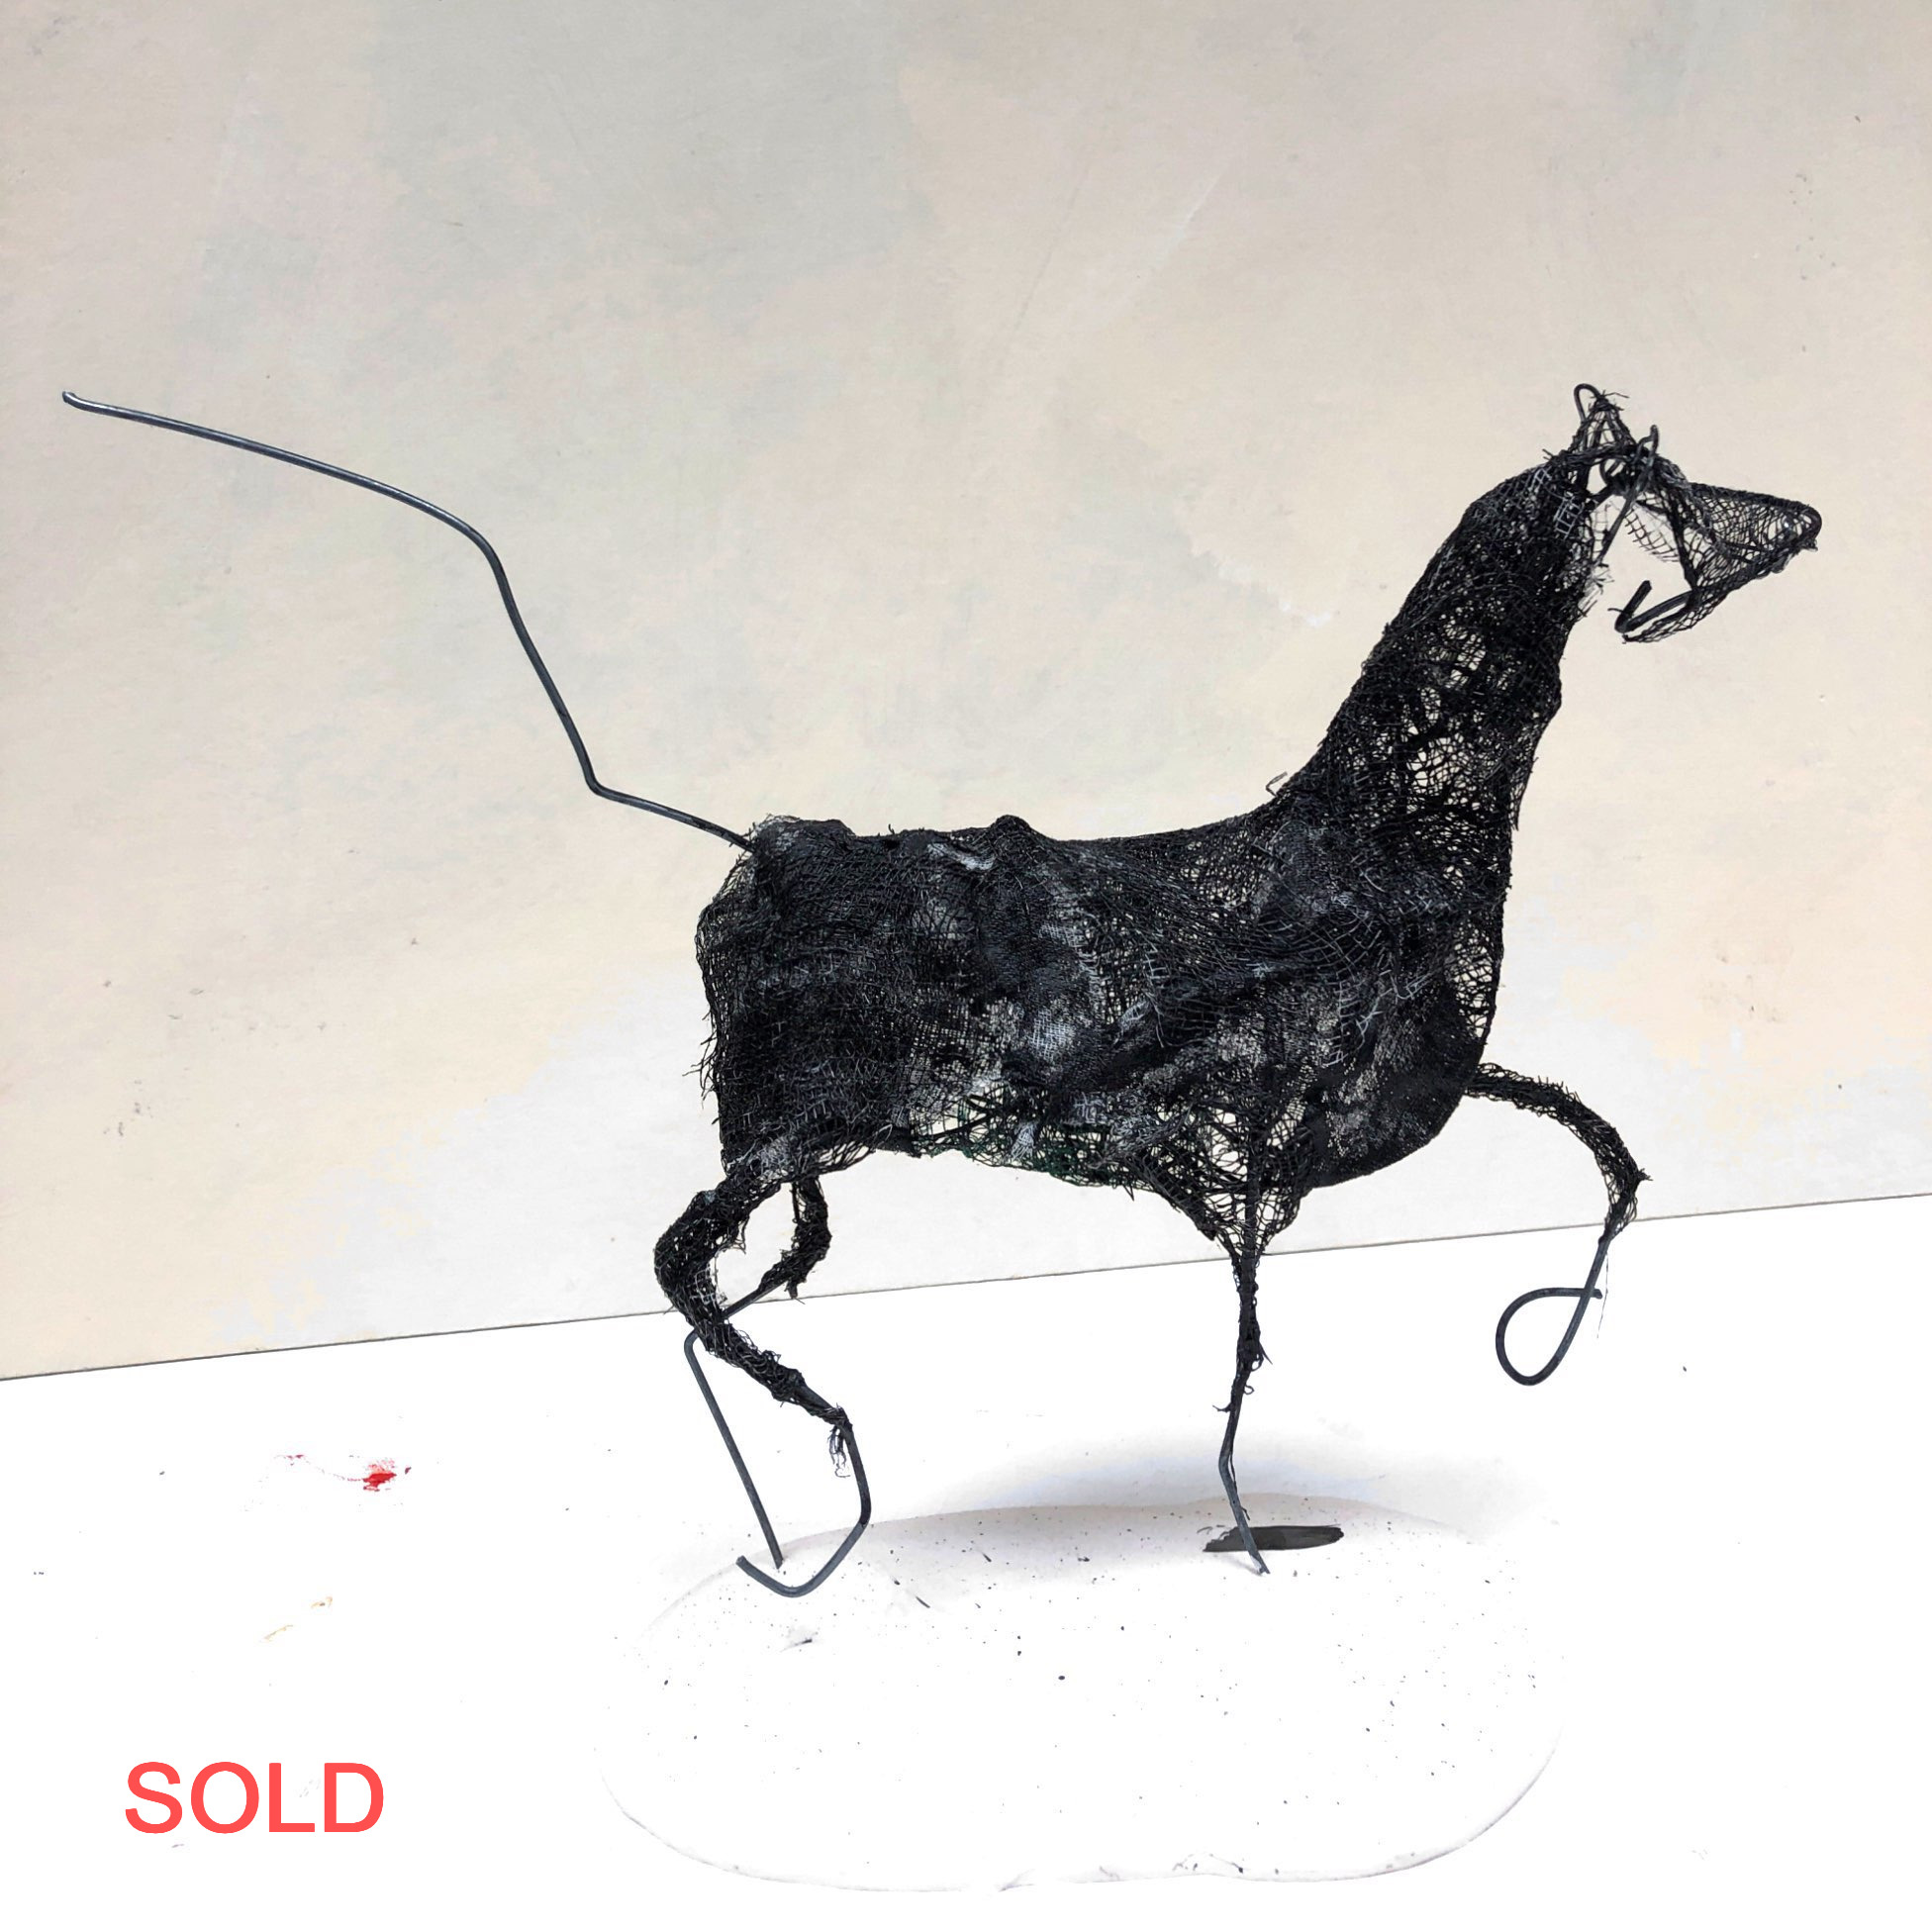 sculpture 4_SOLD